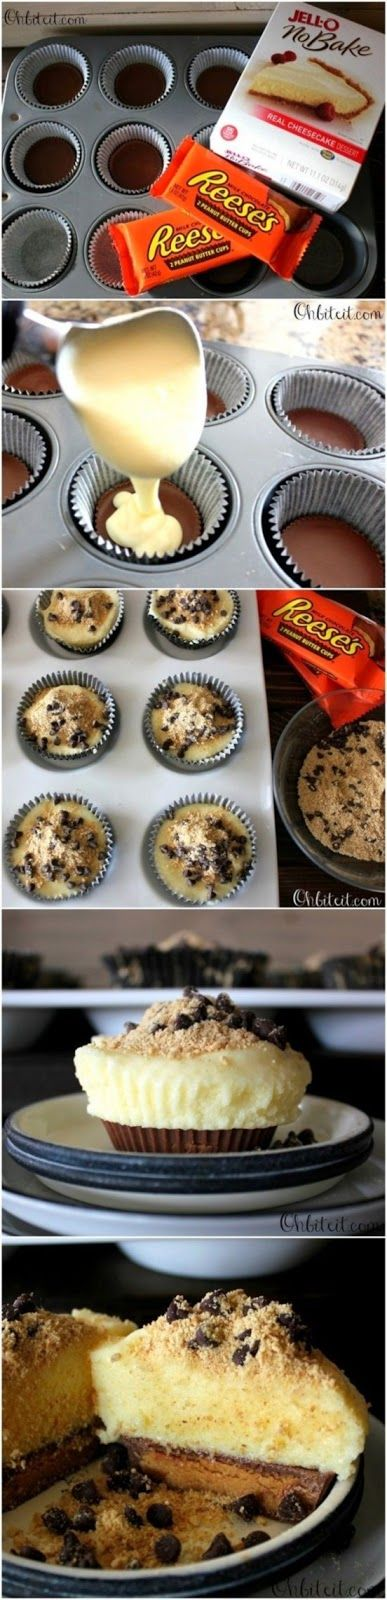 Reese's Bottom Cheesecake Cupcakes 1 Box of JELLO instant NO-Bake Cheesecake Mix Reese's Peanut Butter Cups (one per each Cheesecake) 1 Cup of Mini Chocolate Chips..for sprinkling on top. Approx. 1 Cup of Graham Cracker Crumbs for sprinkling on top.